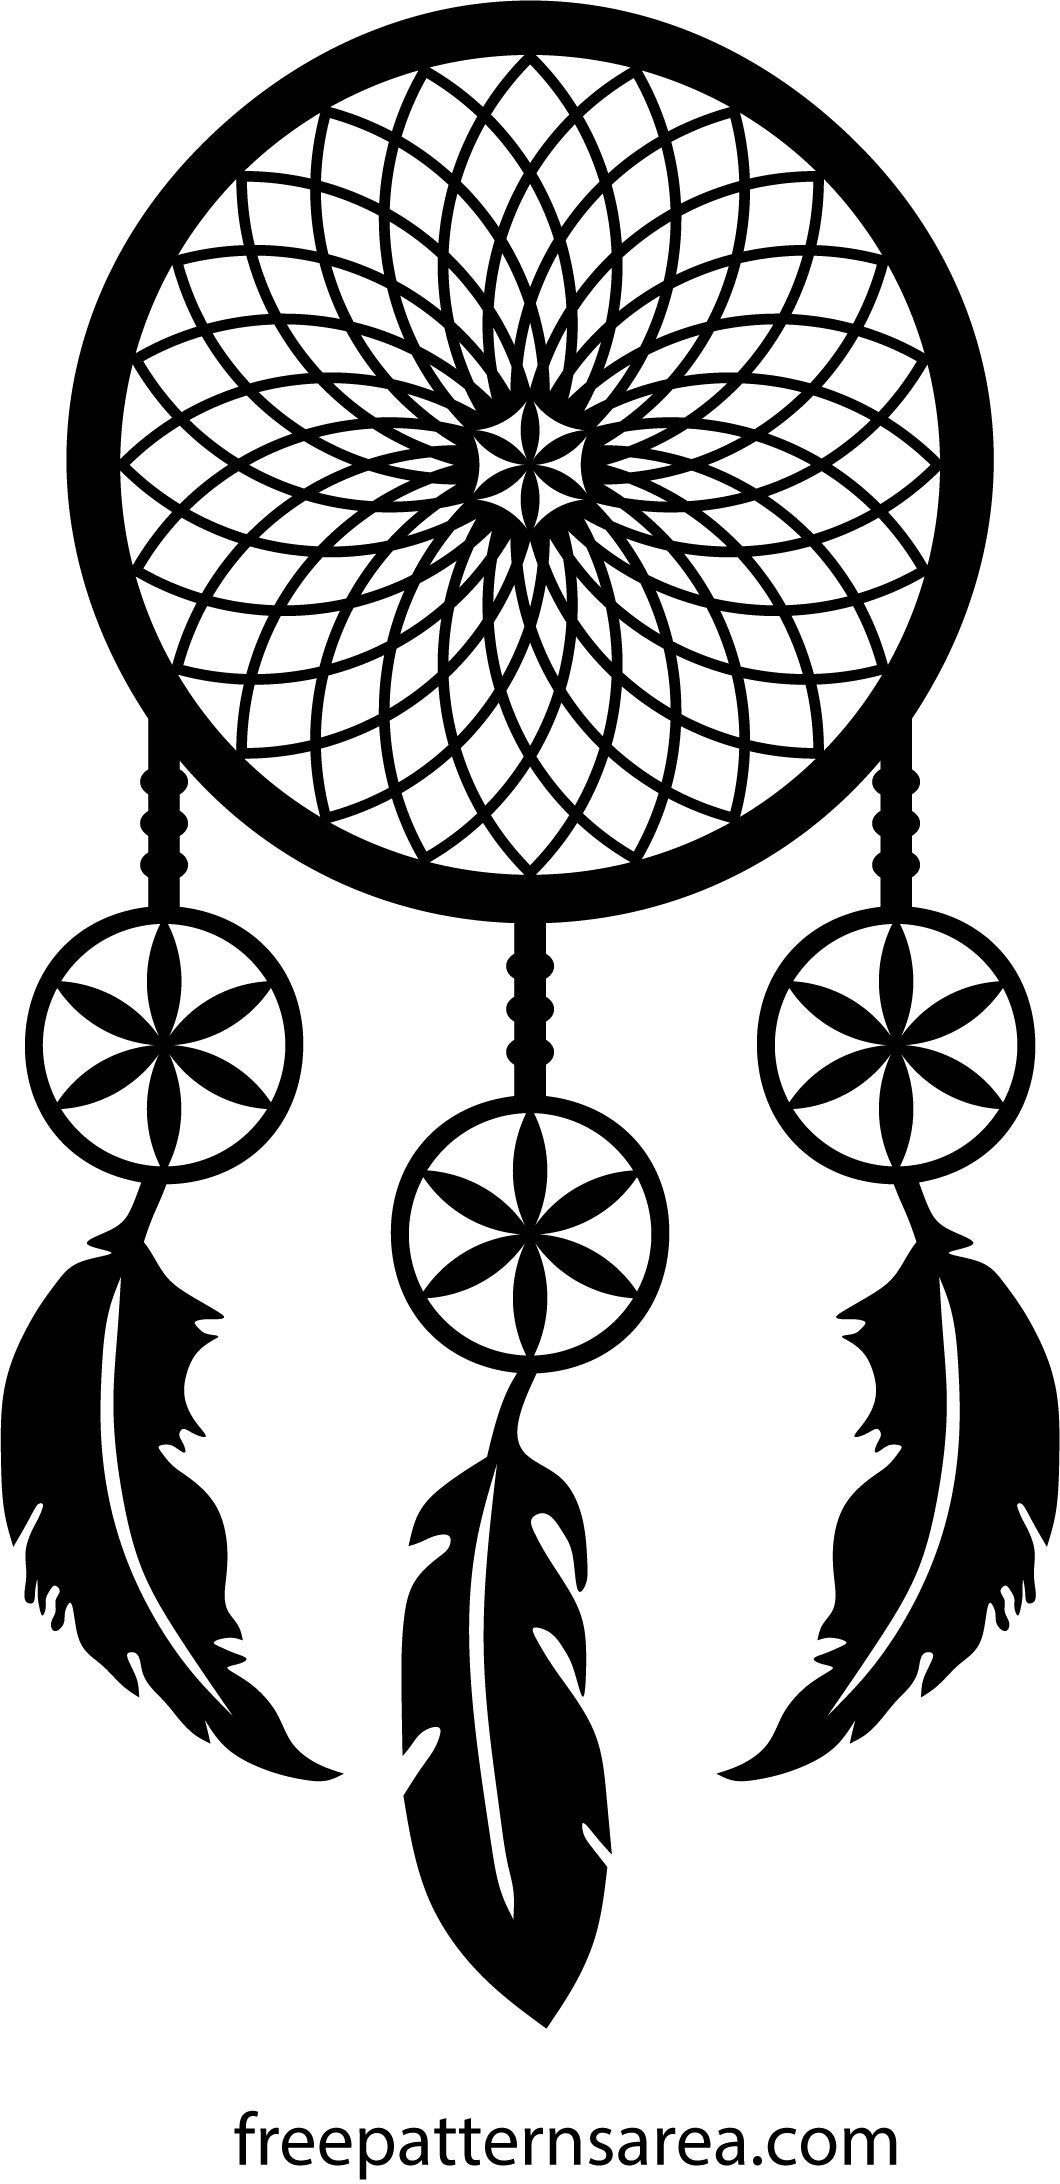 meaning of dream catcher